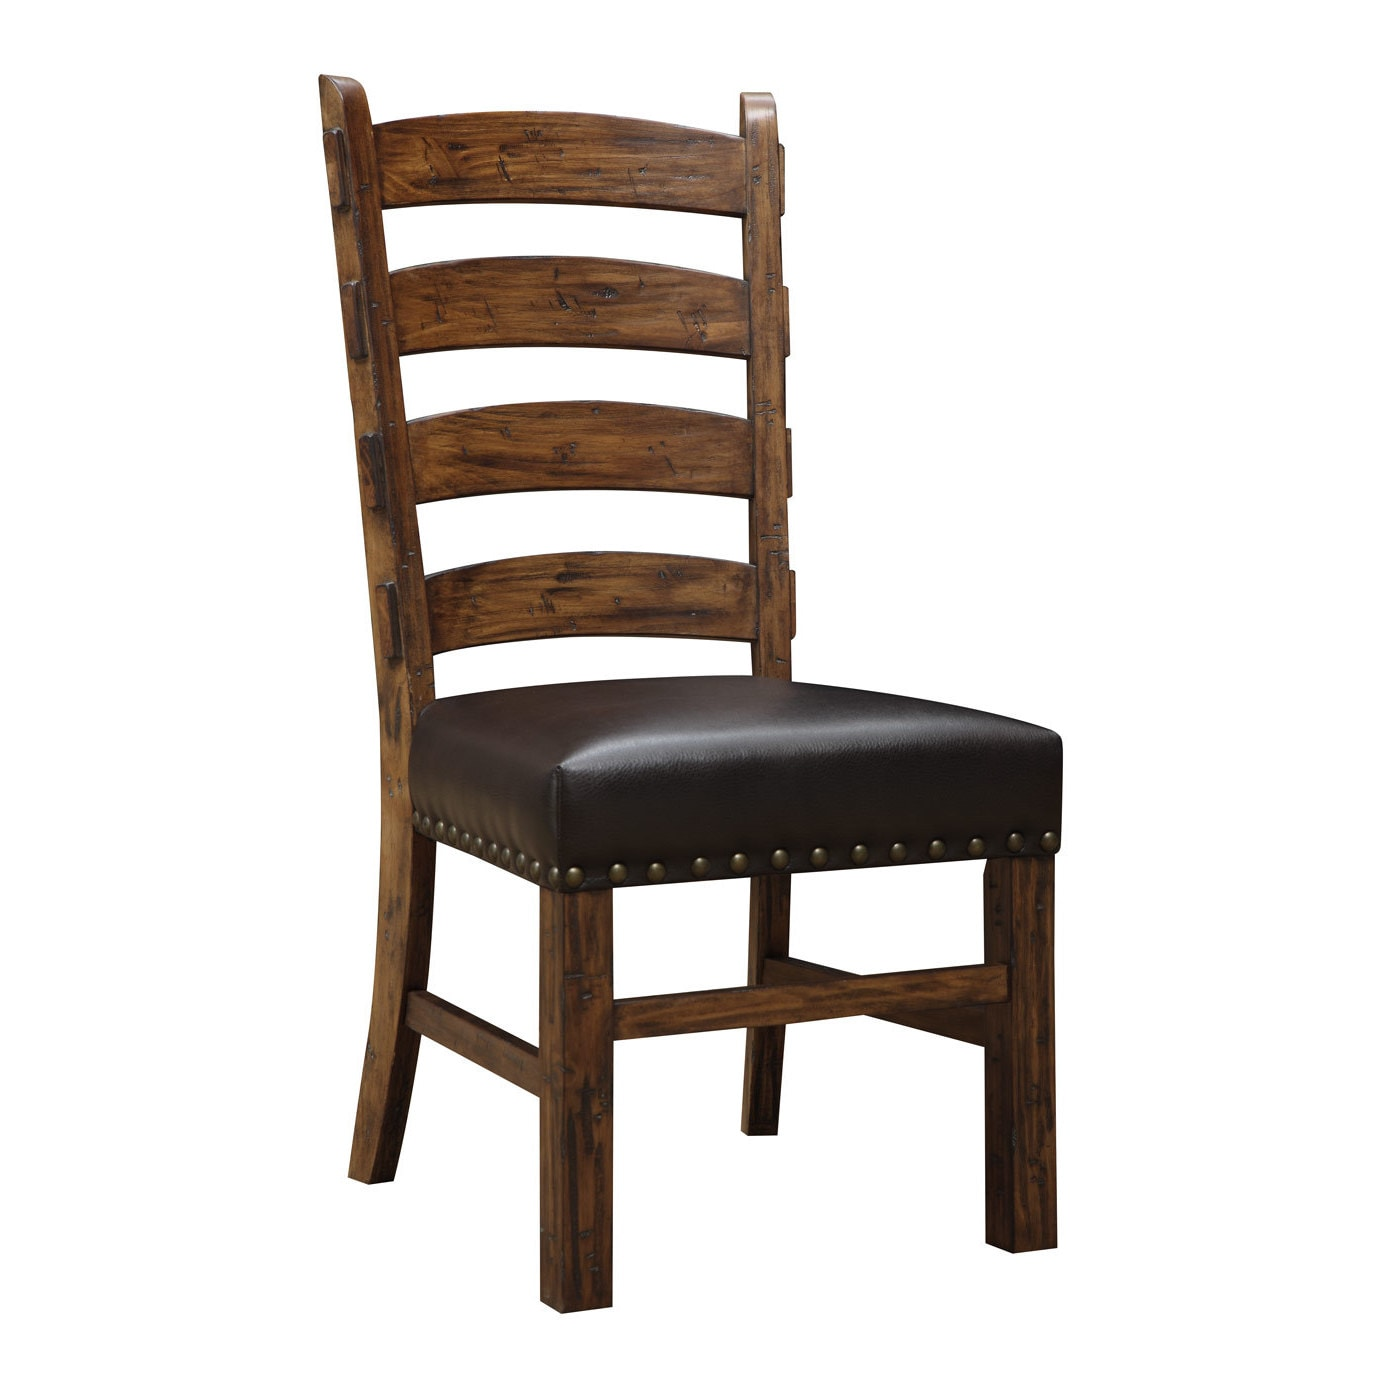 Shop Emerald Home Rustic Ladderback Dining Chair (Set of 2) - On Sale -  Free Shipping Today - Overstock.com - 9358950 - Shop Emerald Home Rustic Ladderback Dining Chair (Set Of 2) - On